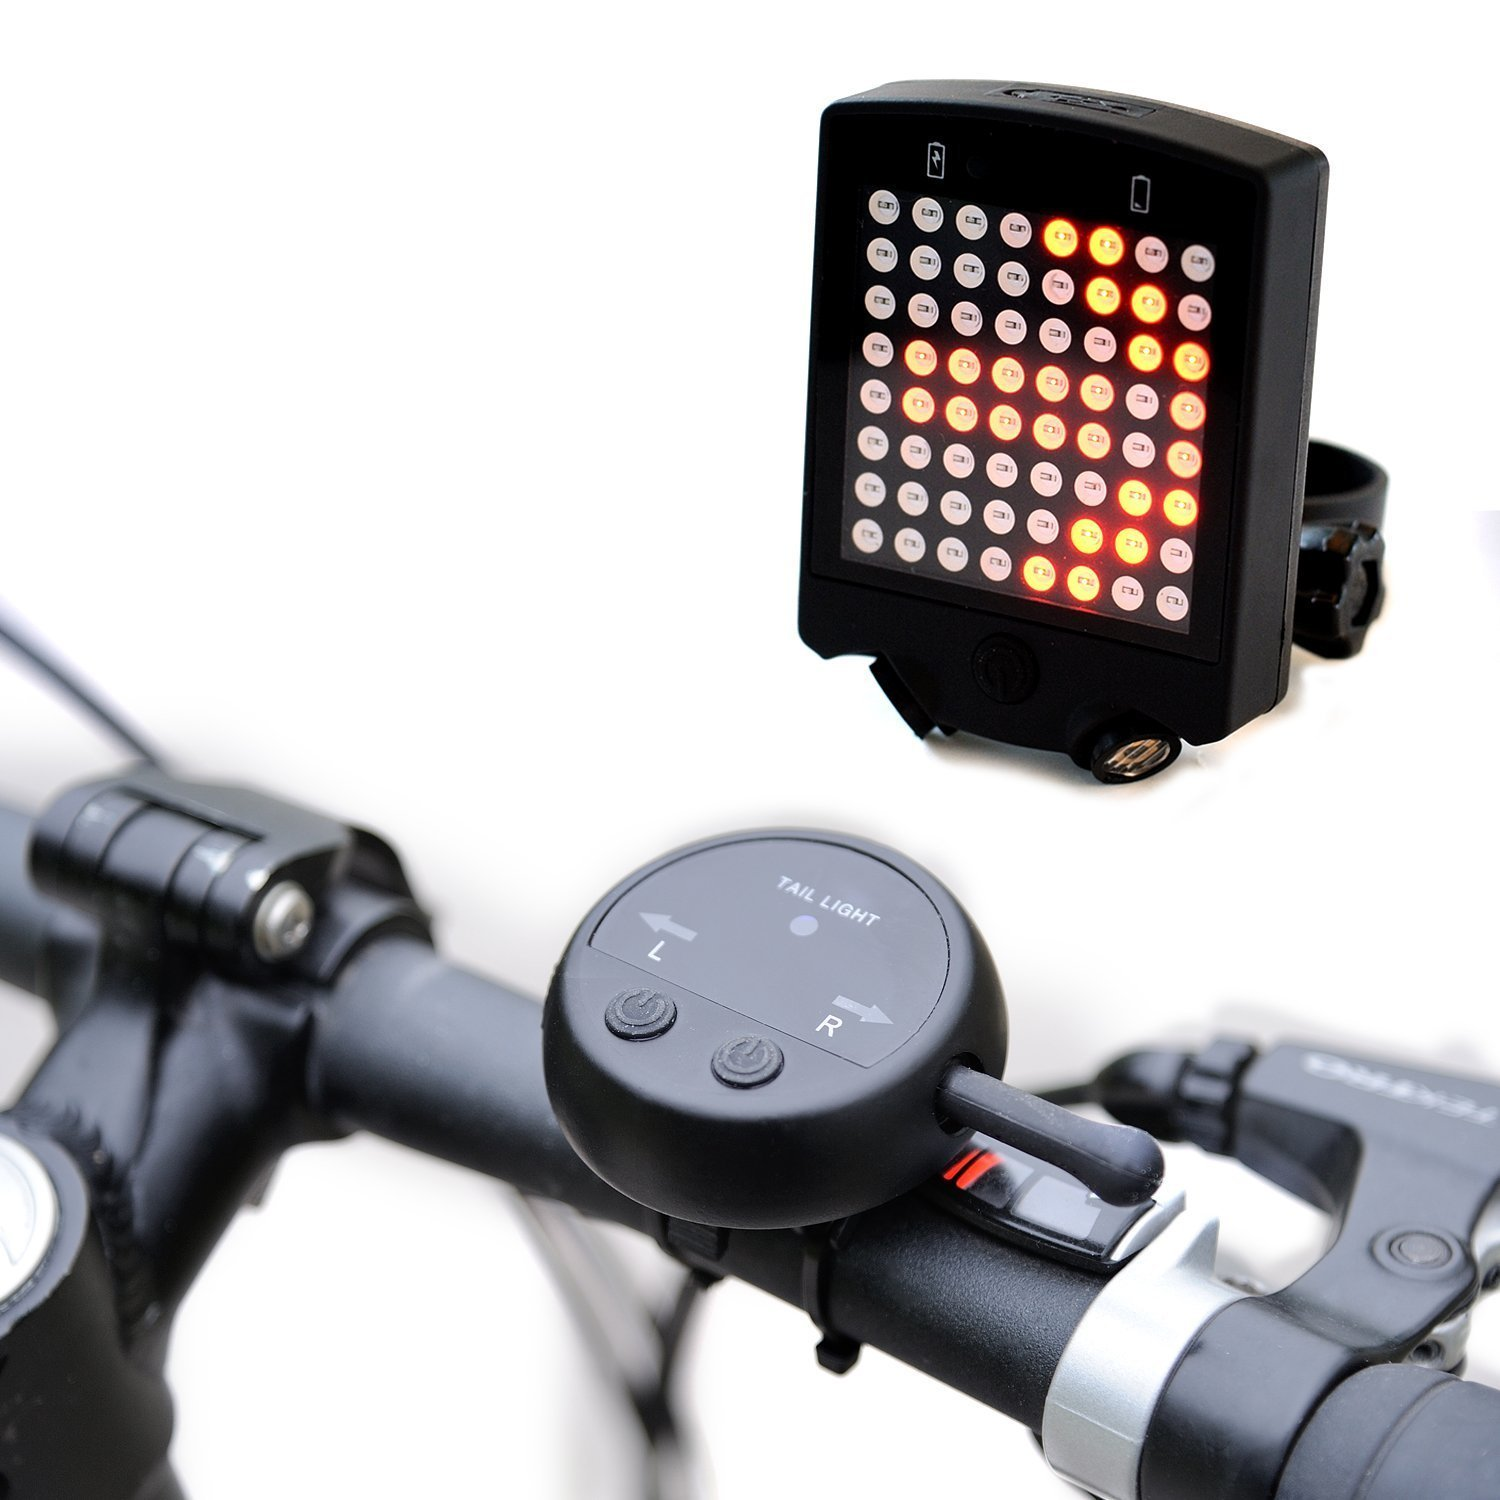 Bright 64 LED Wireless Turn Signals Bike Light Rechargeable Led Bike Taillight Perfect Safety Bicycle Light for Long Distance Cycling Warning Lights